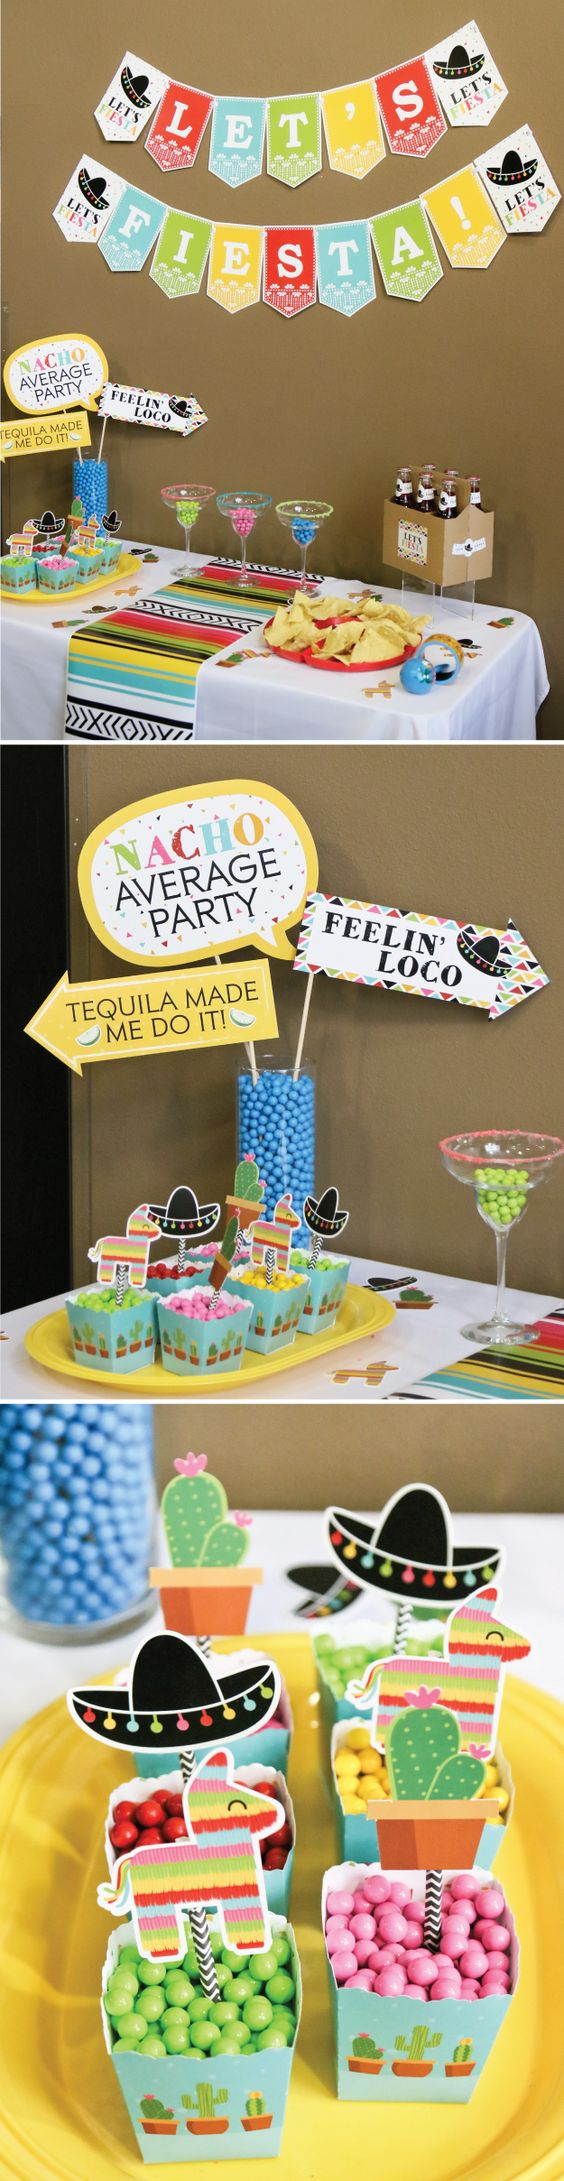 Style a fun  Mexican fiesta for Cinco de Mayo  and all of your friends will come ready to celebrate! Personalized party supplies are an easy way to make your event memorable - then add a fun photo booth and everyone will leave with photos to share.